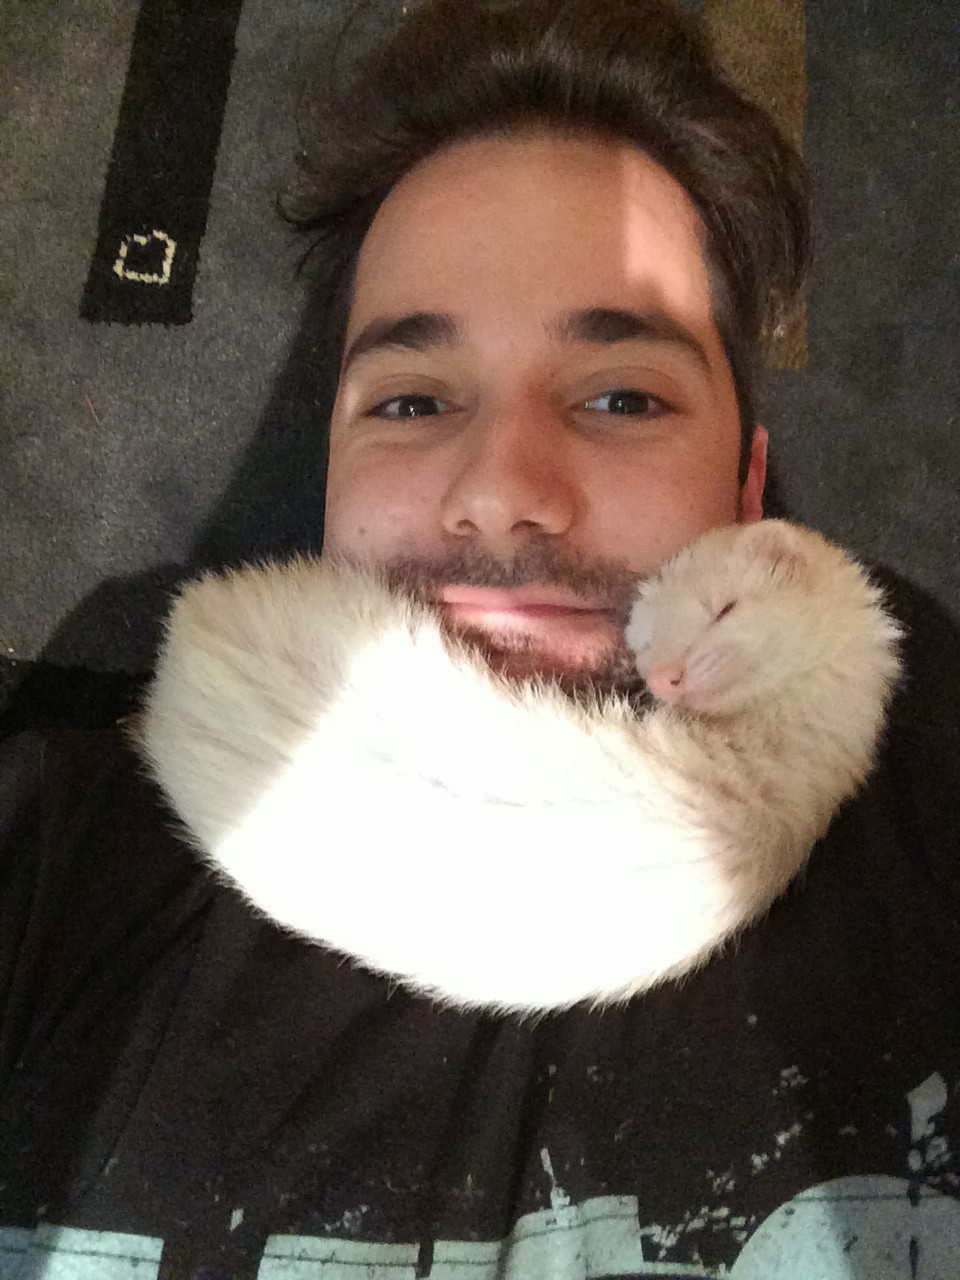 Funny animals of the week - 3 January 2014 (40 pics), ferret sleeps with a guy